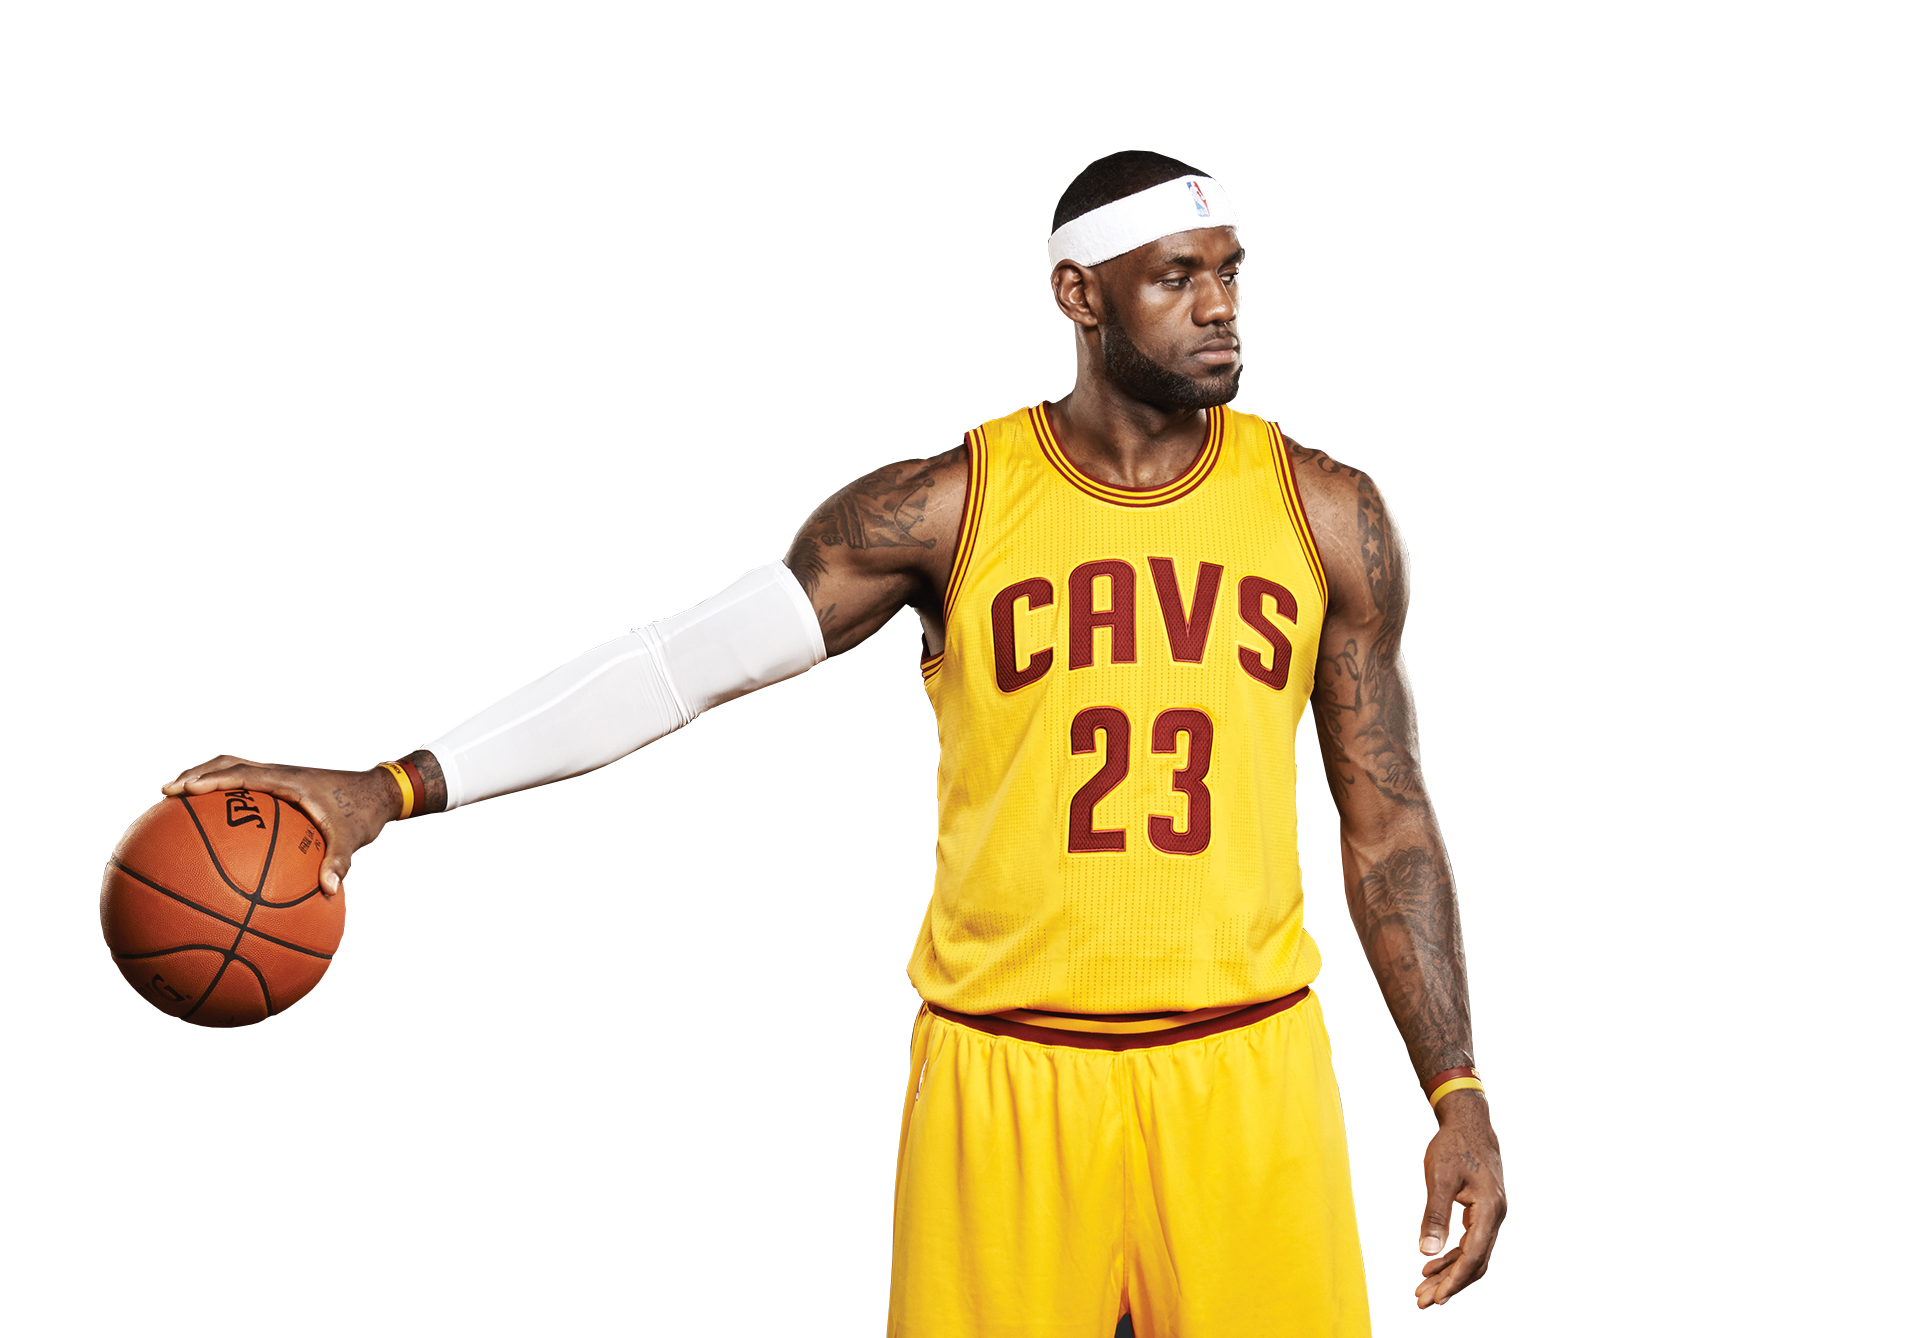 LeBron James Transparent Background - Basketball Players PNG HD